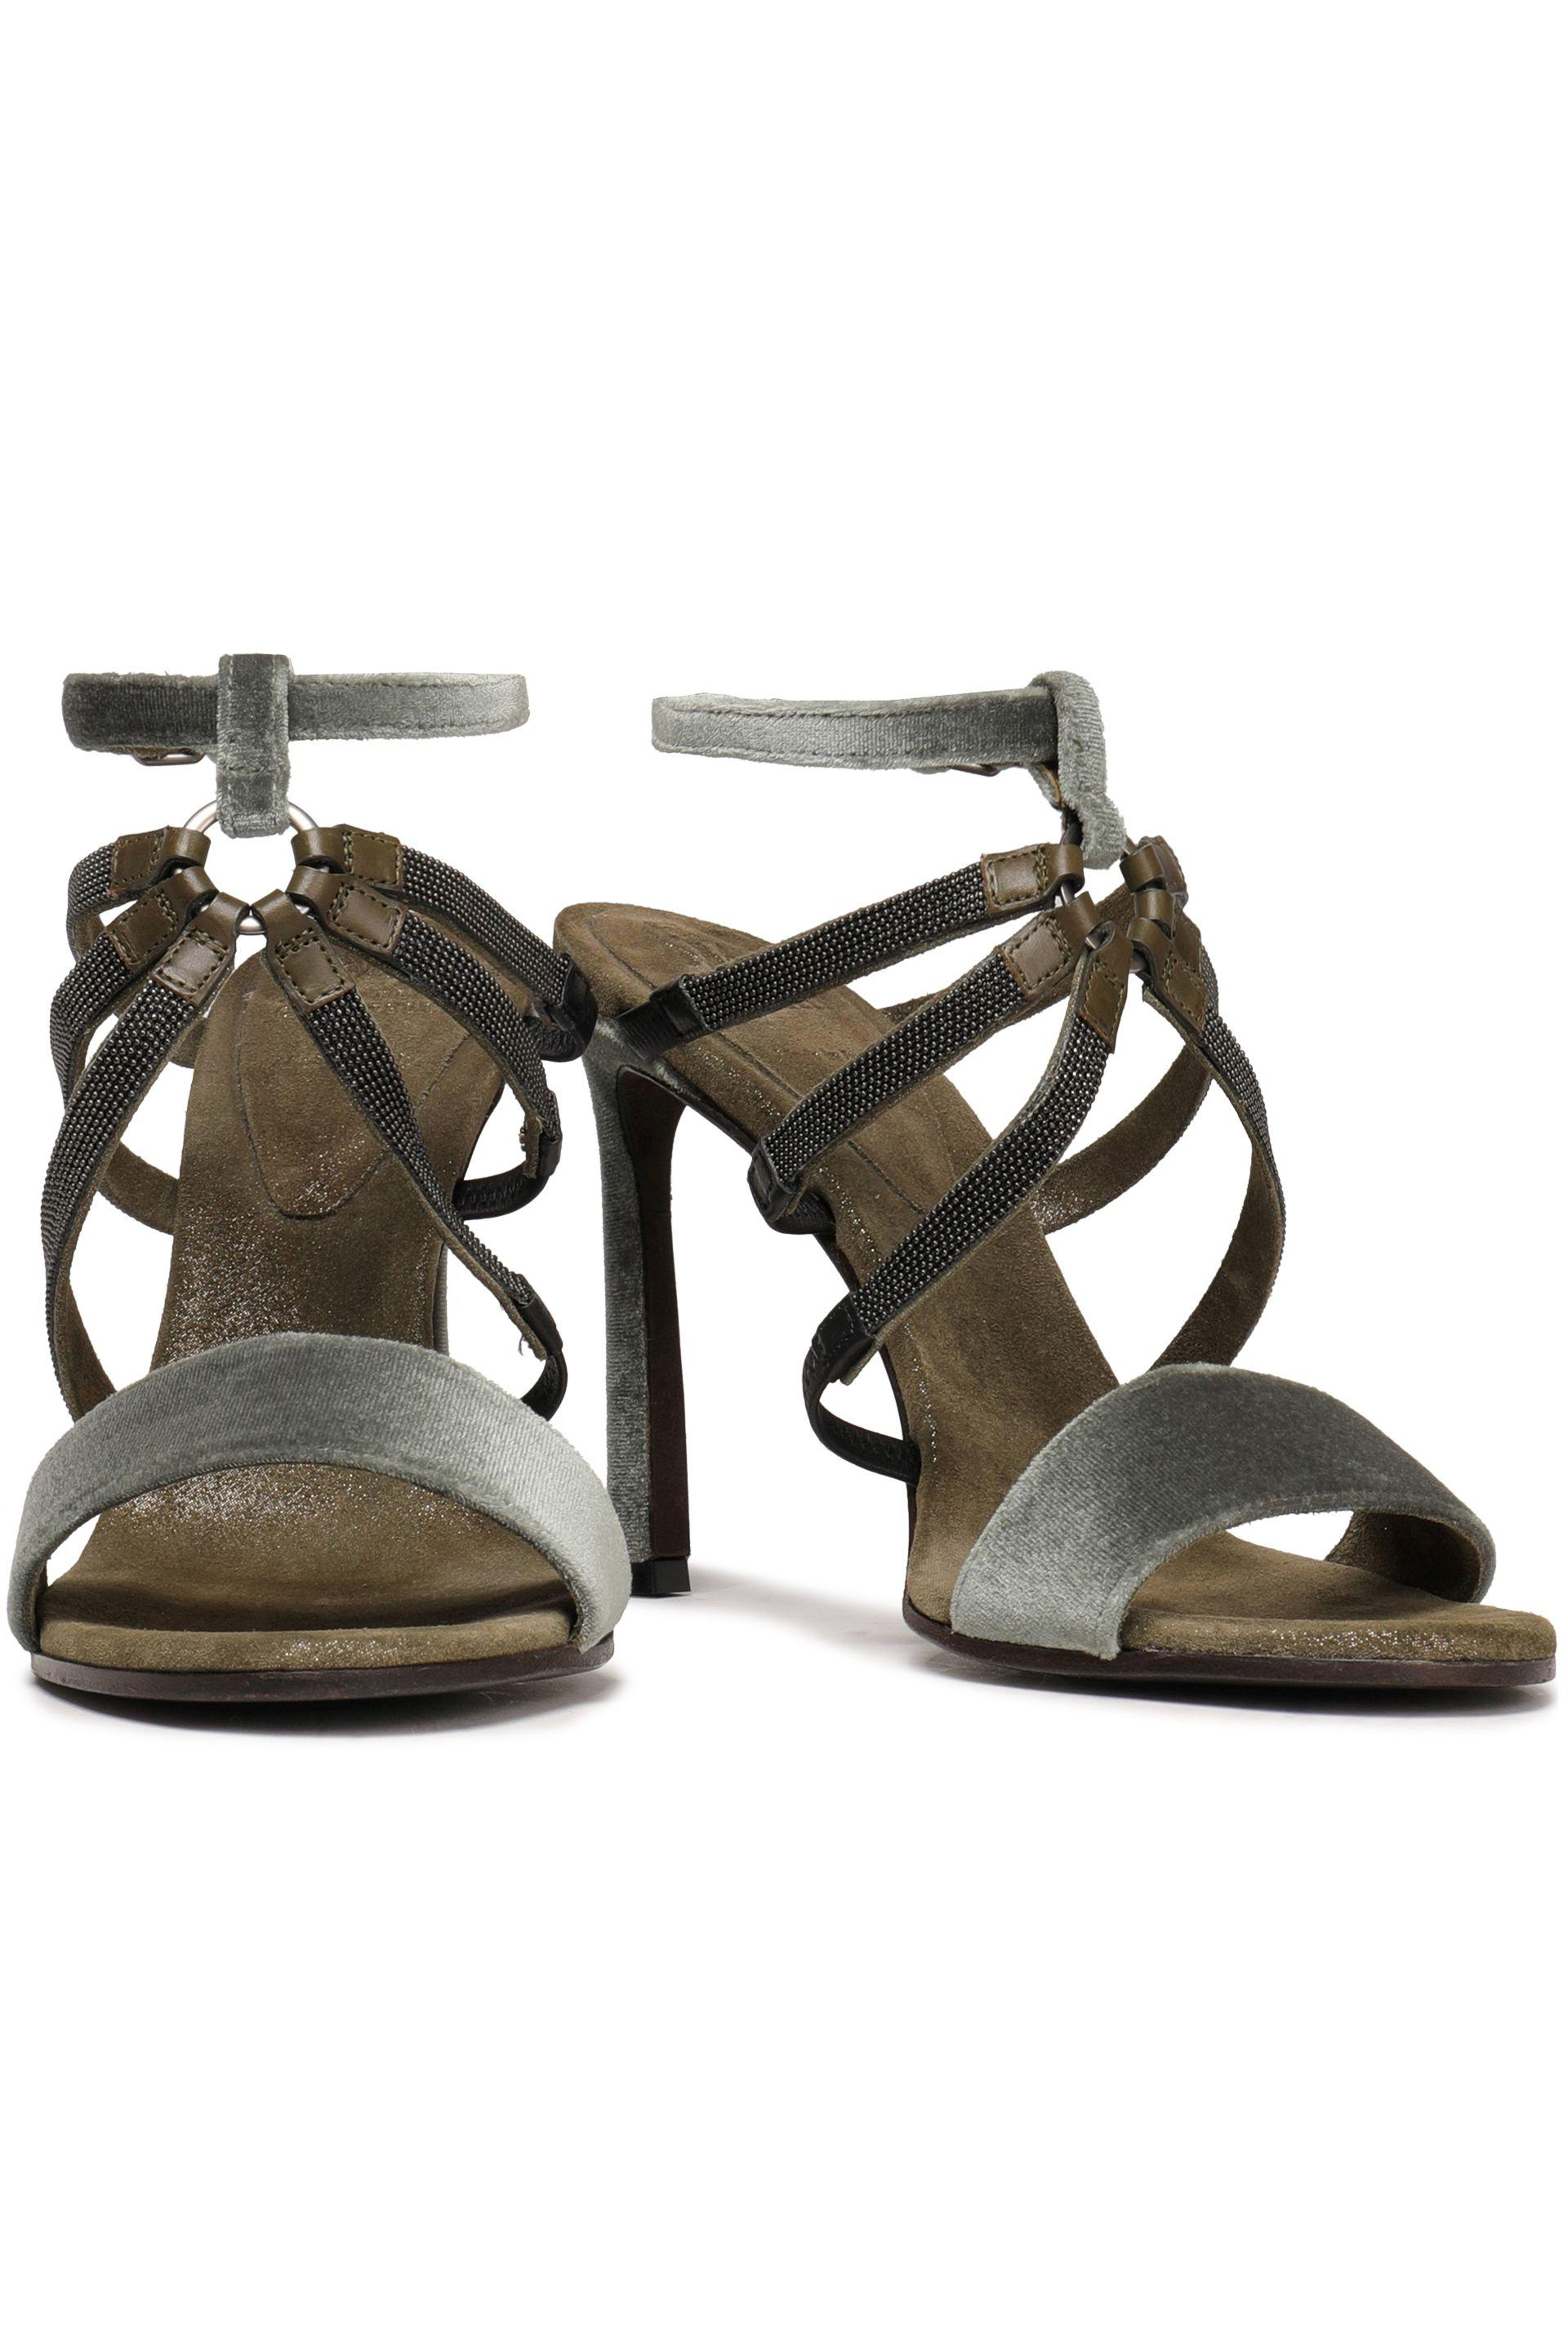 5bd60e992 Brunello Cucinelli - Woman Bead-embellished Velvet Sandals Leaf Green -  Lyst. View fullscreen